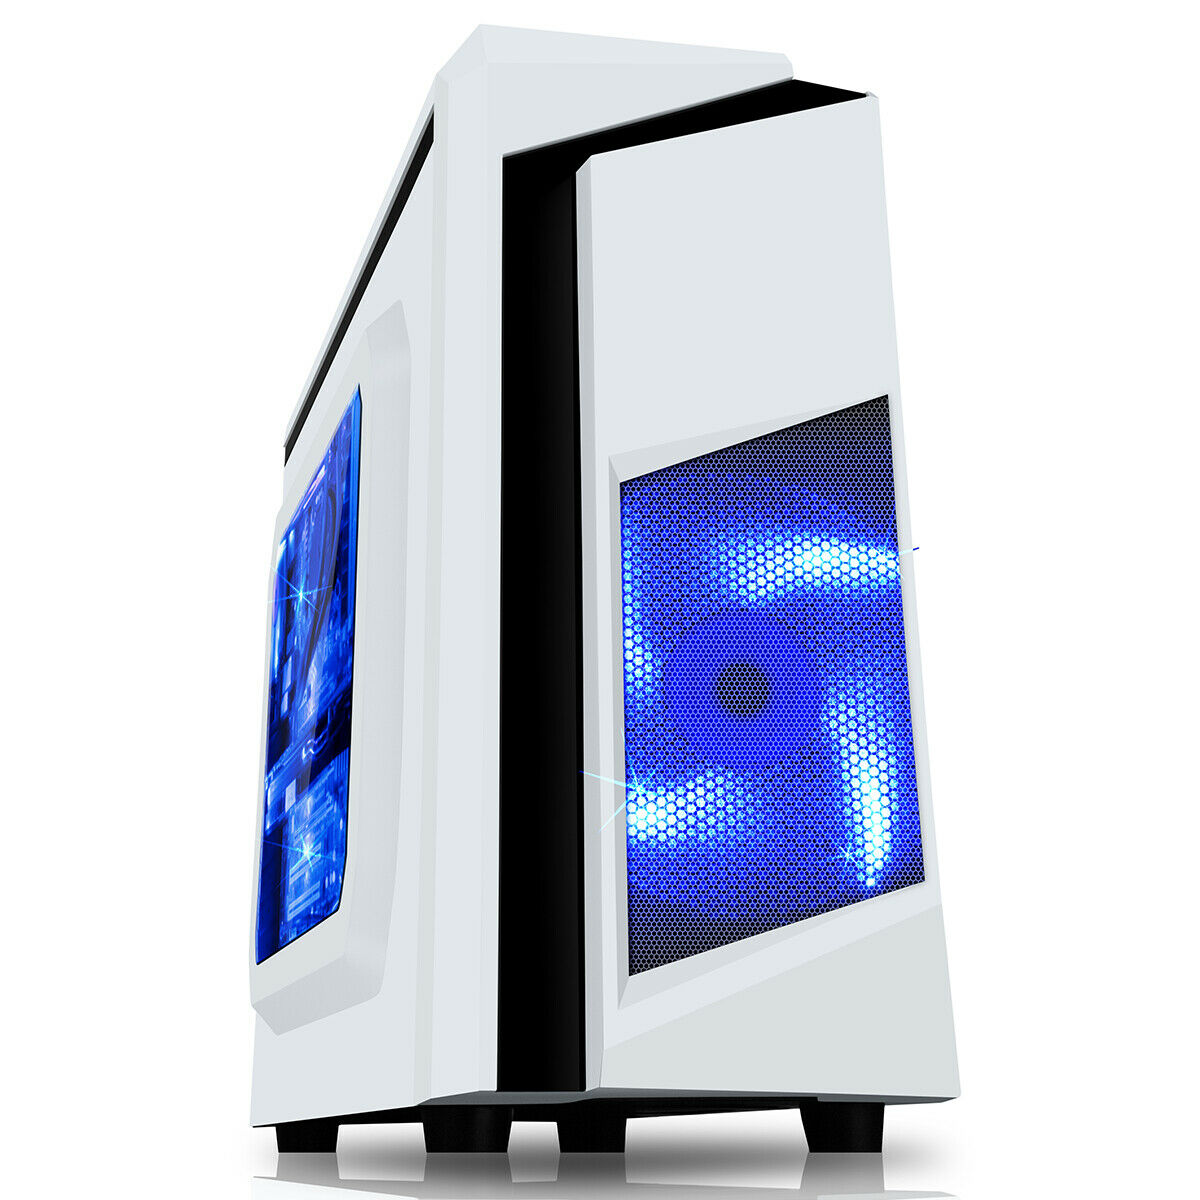 Computer Games - Intel Quad Core i5 Gaming PC Computer Desktop Tower WIFI 8GB DDR3 1TB HDD Win10